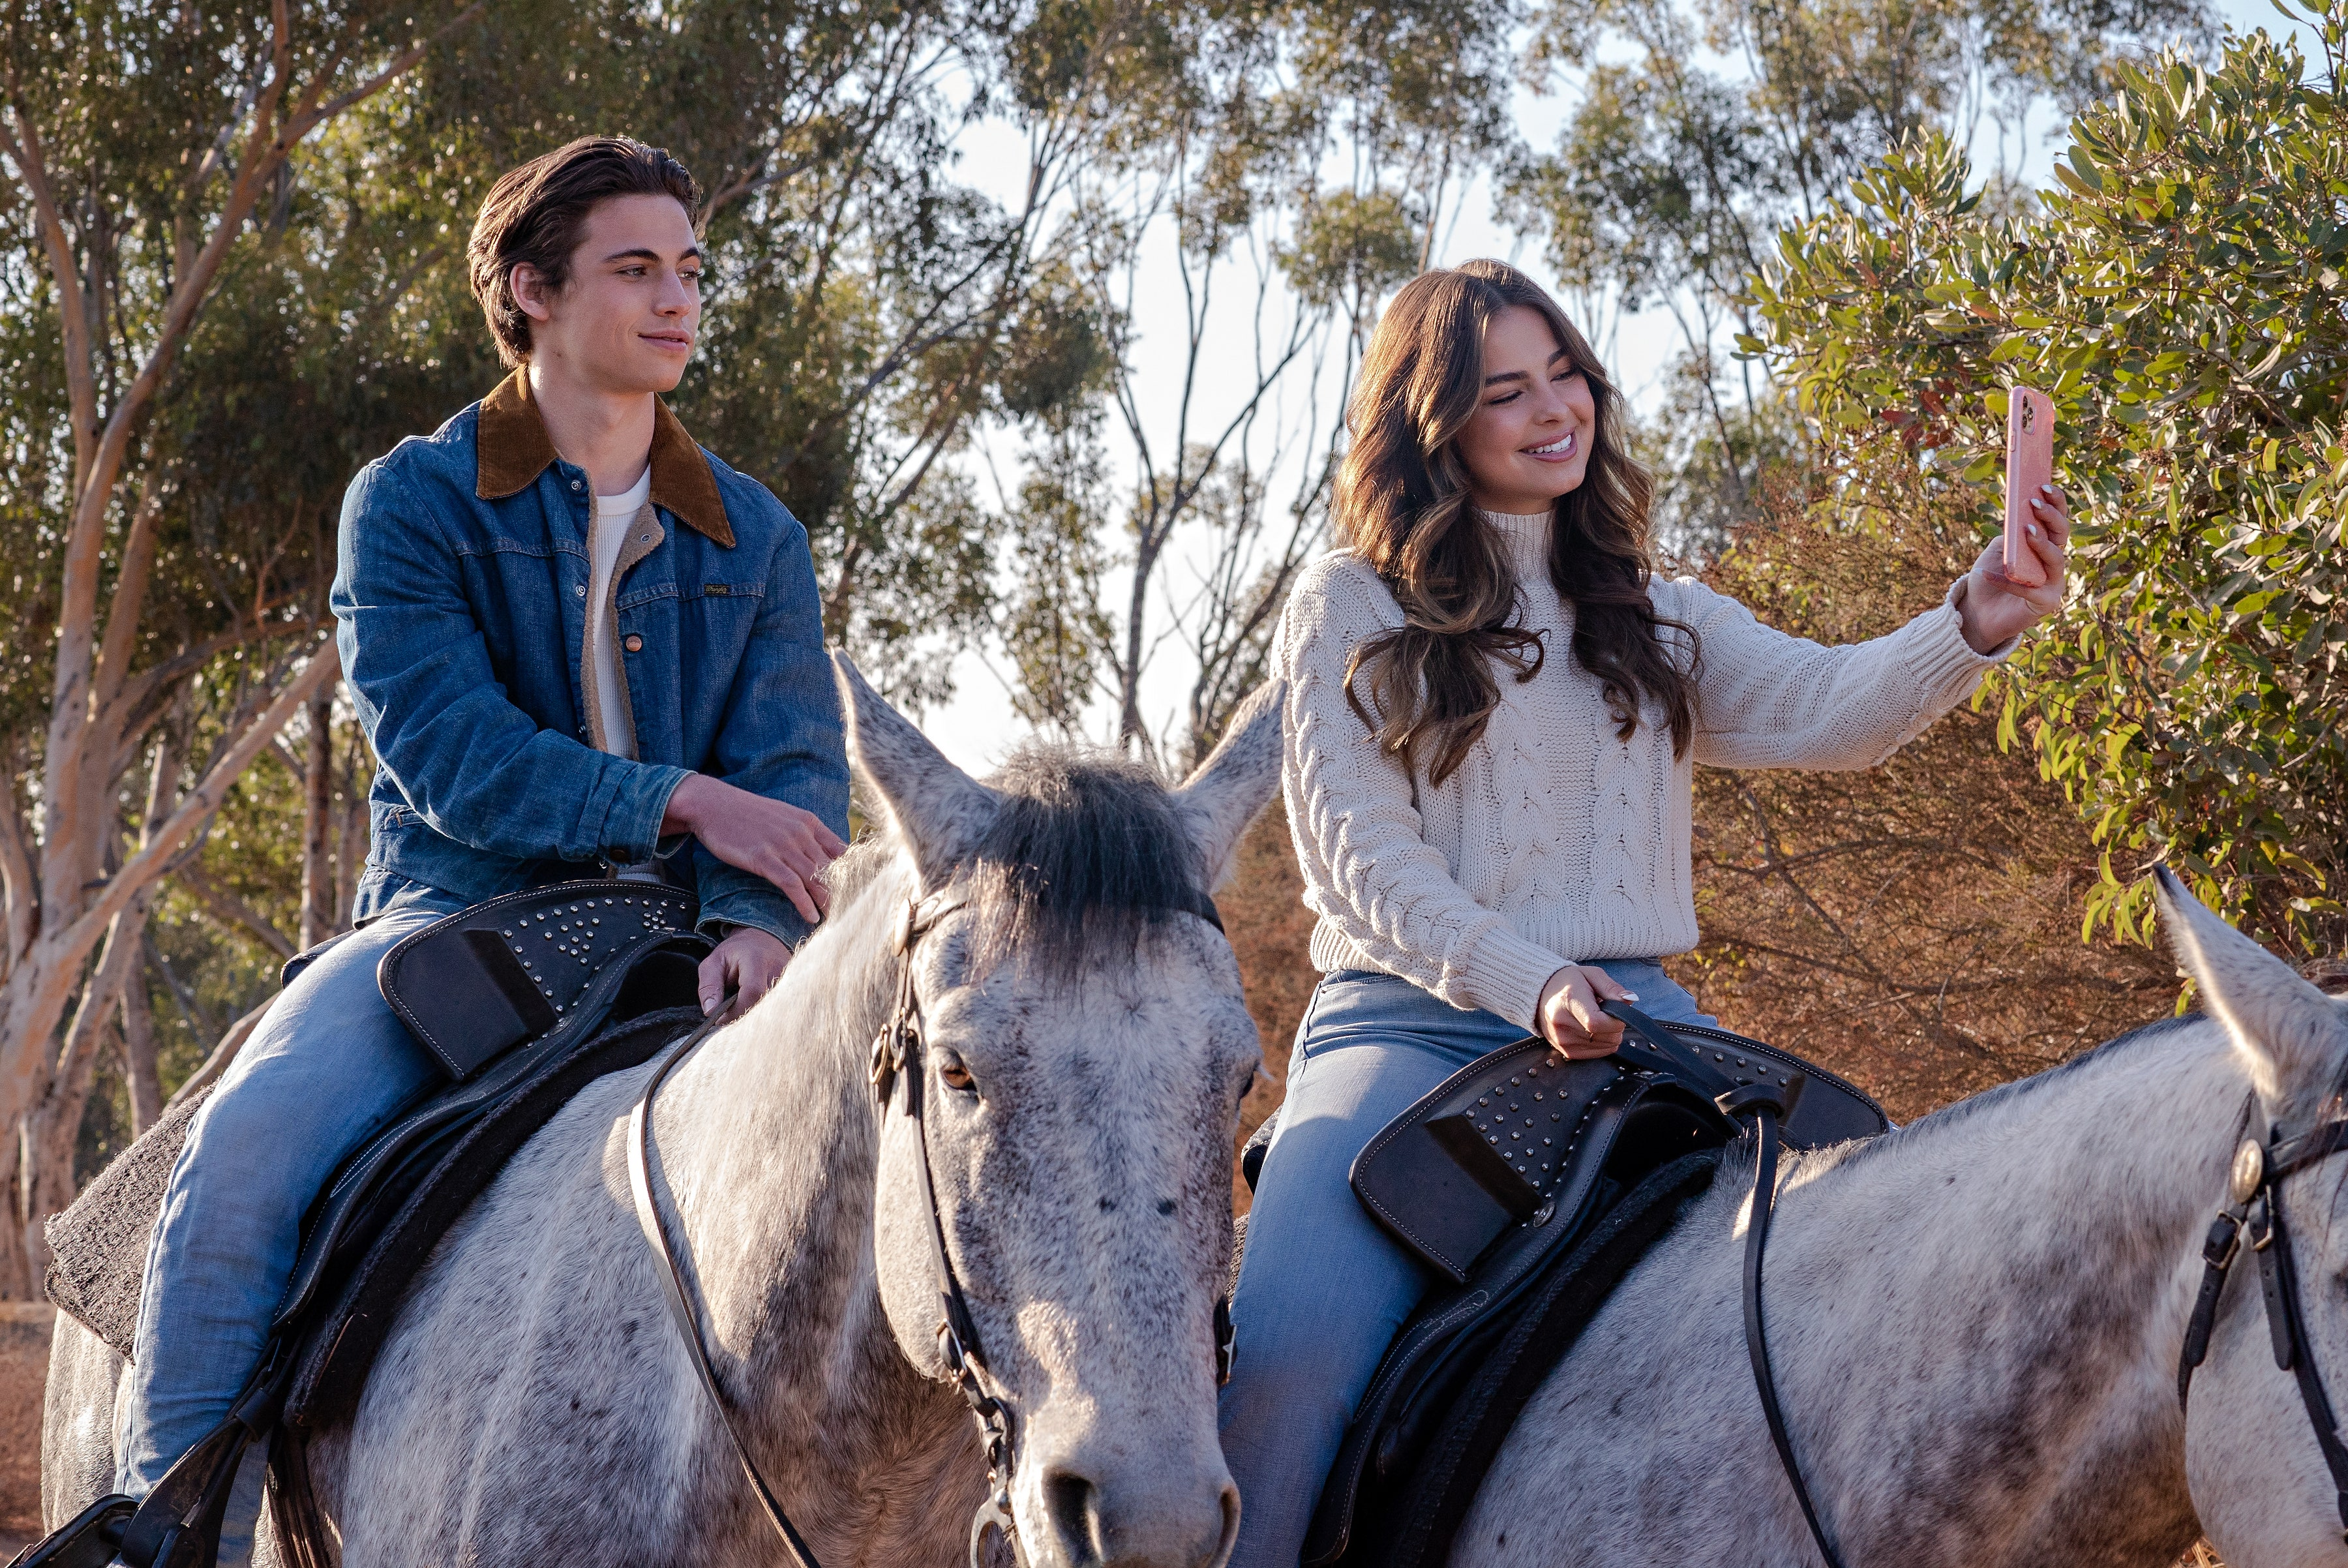 Two people ride on horseback while one takes a selfie.